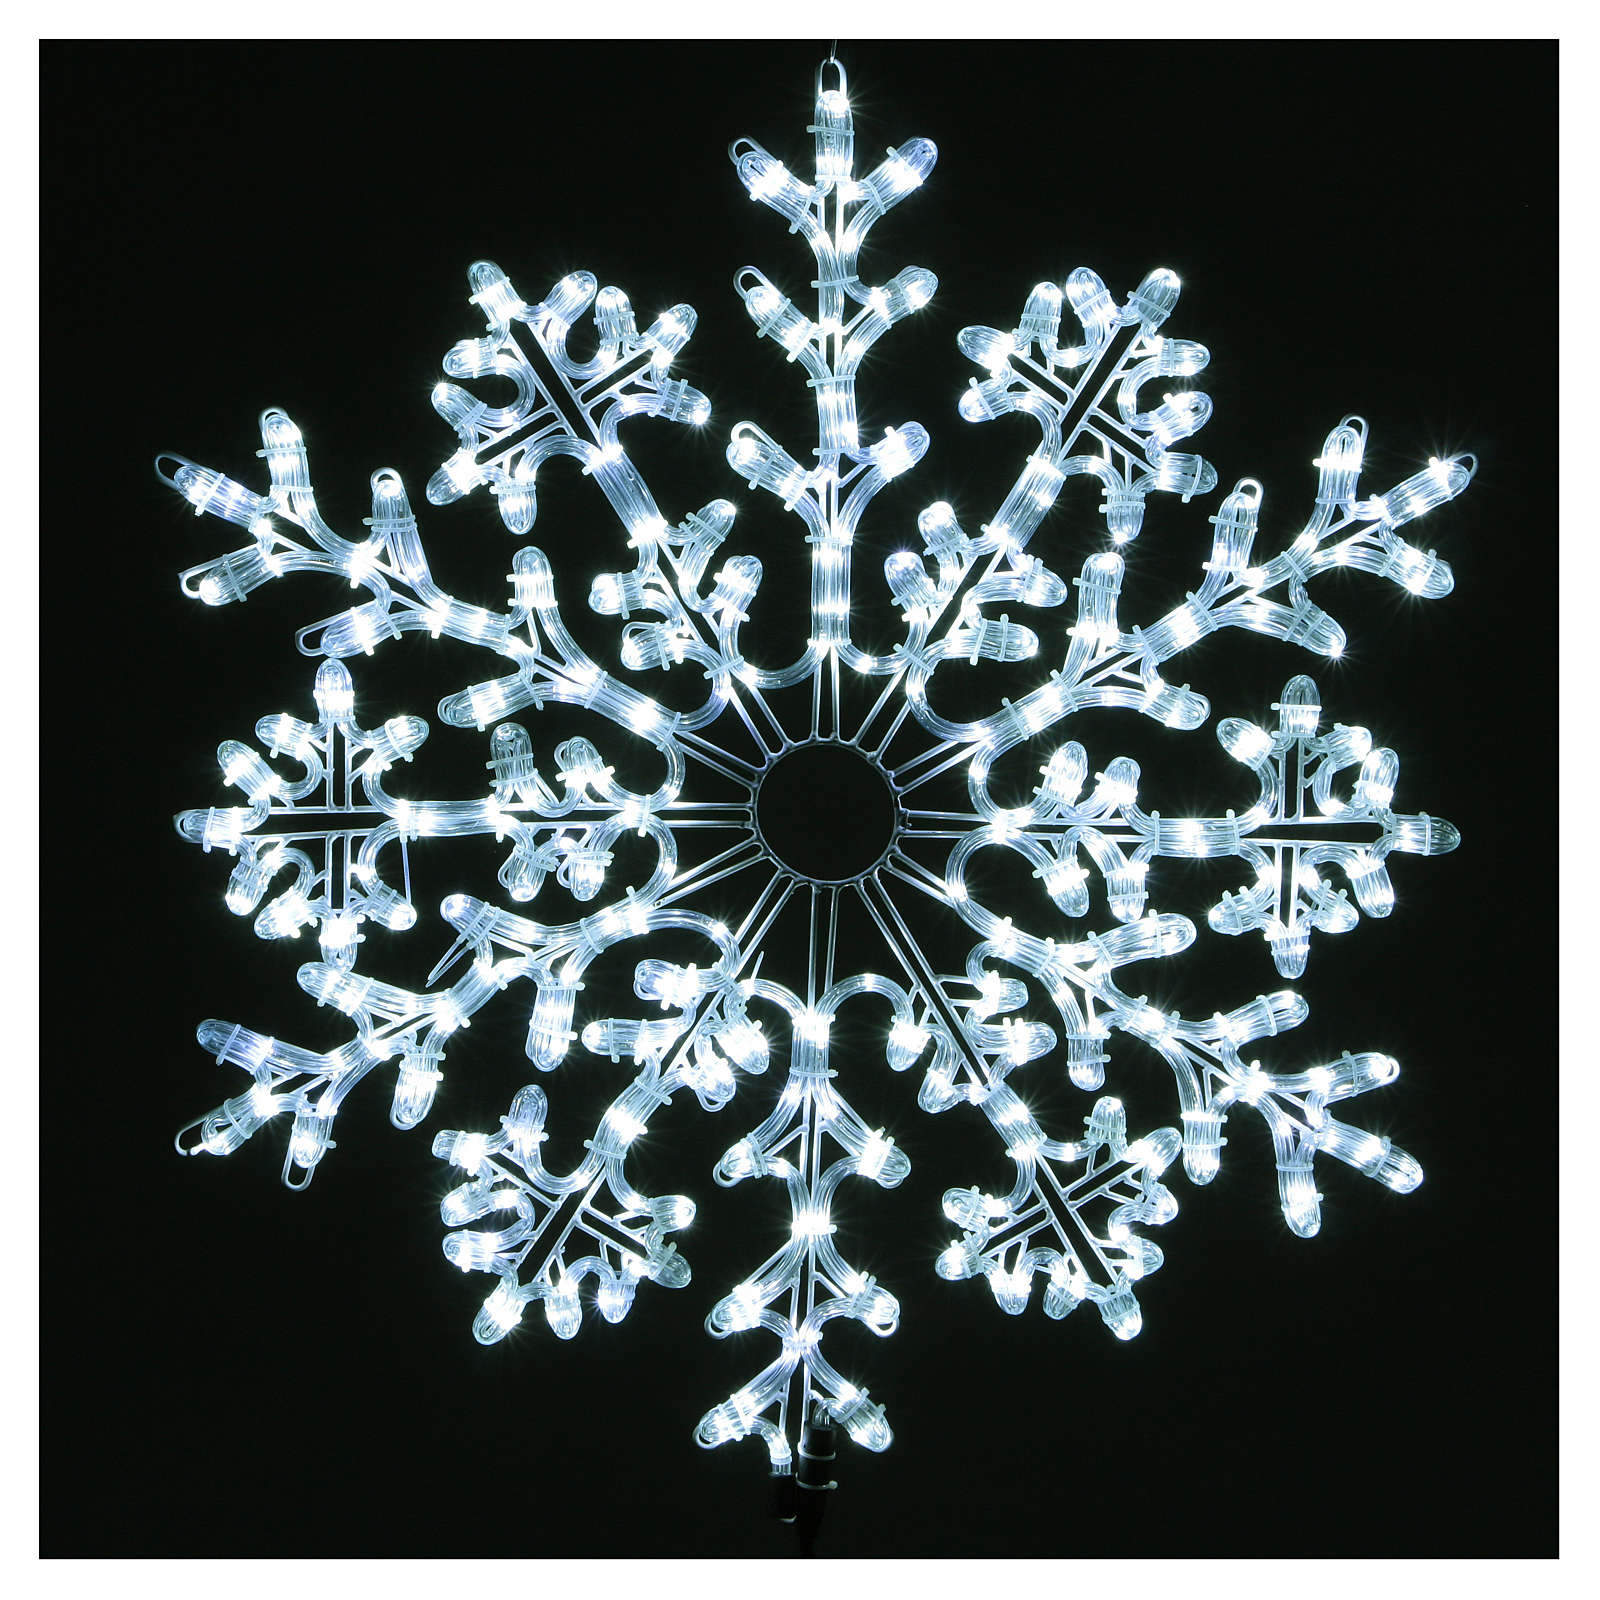 Snowflake 336 ice white LED lights for indoor and outdoor use 3